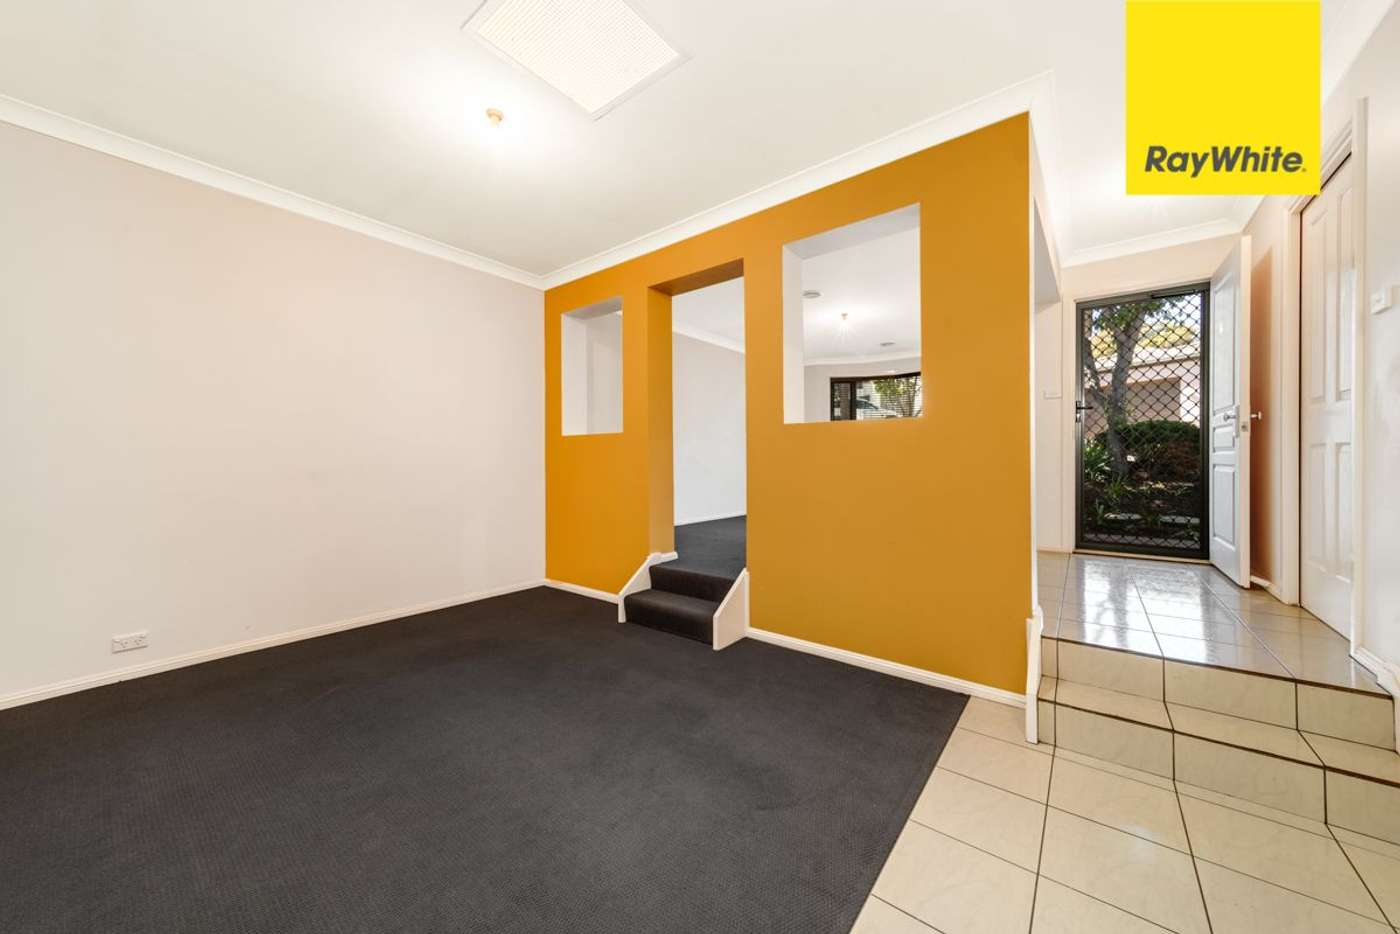 Sixth view of Homely townhouse listing, 18/12 Daley Crescent, Fraser ACT 2615